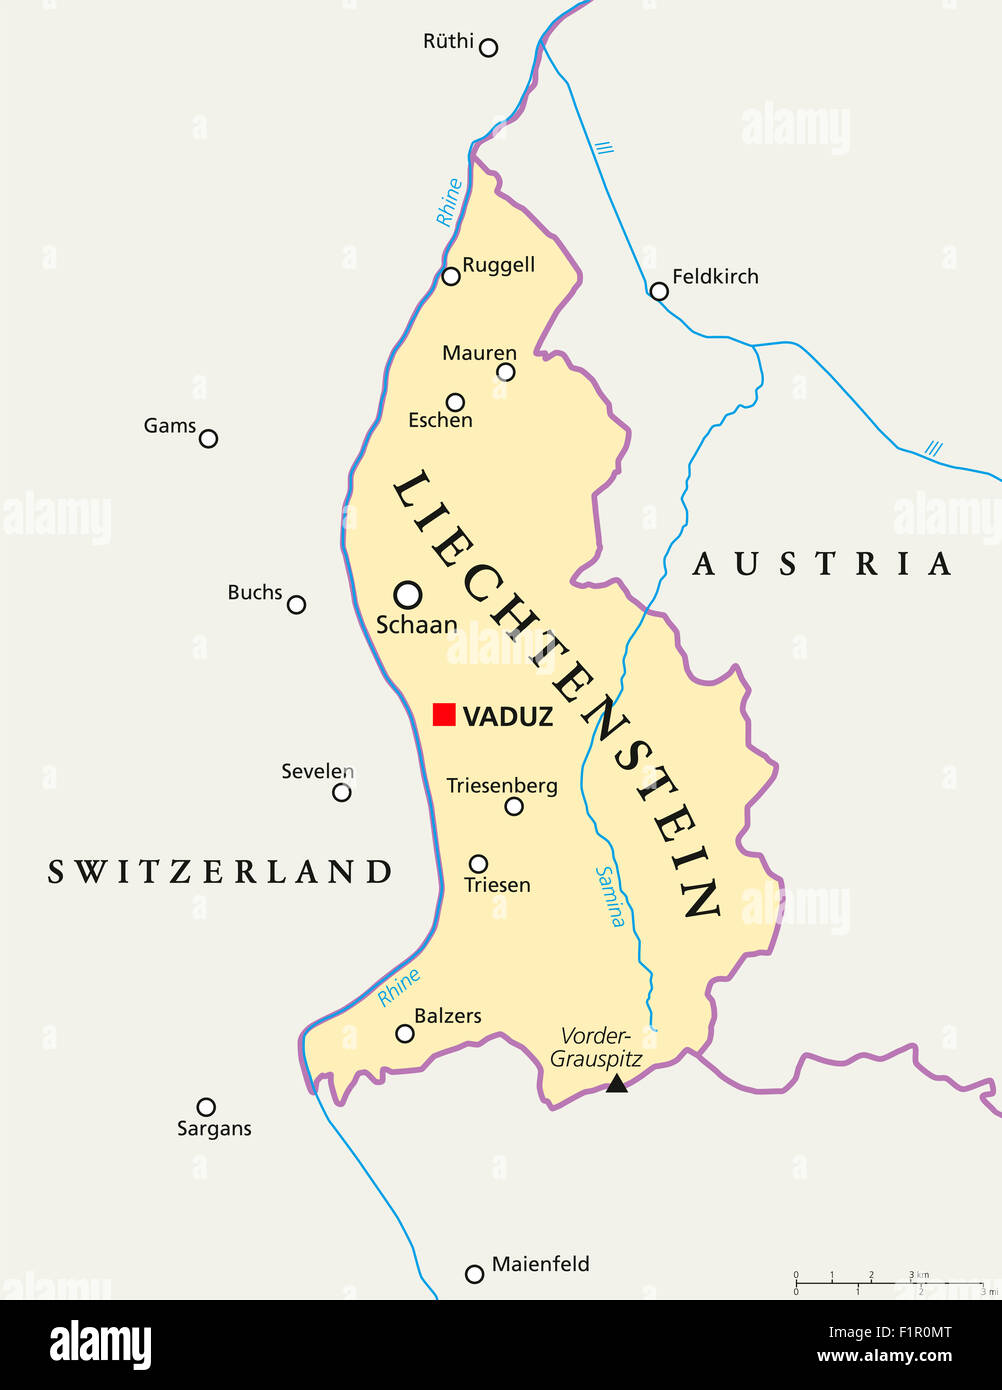 Liechtenstein political map with capital Vaduz national borders